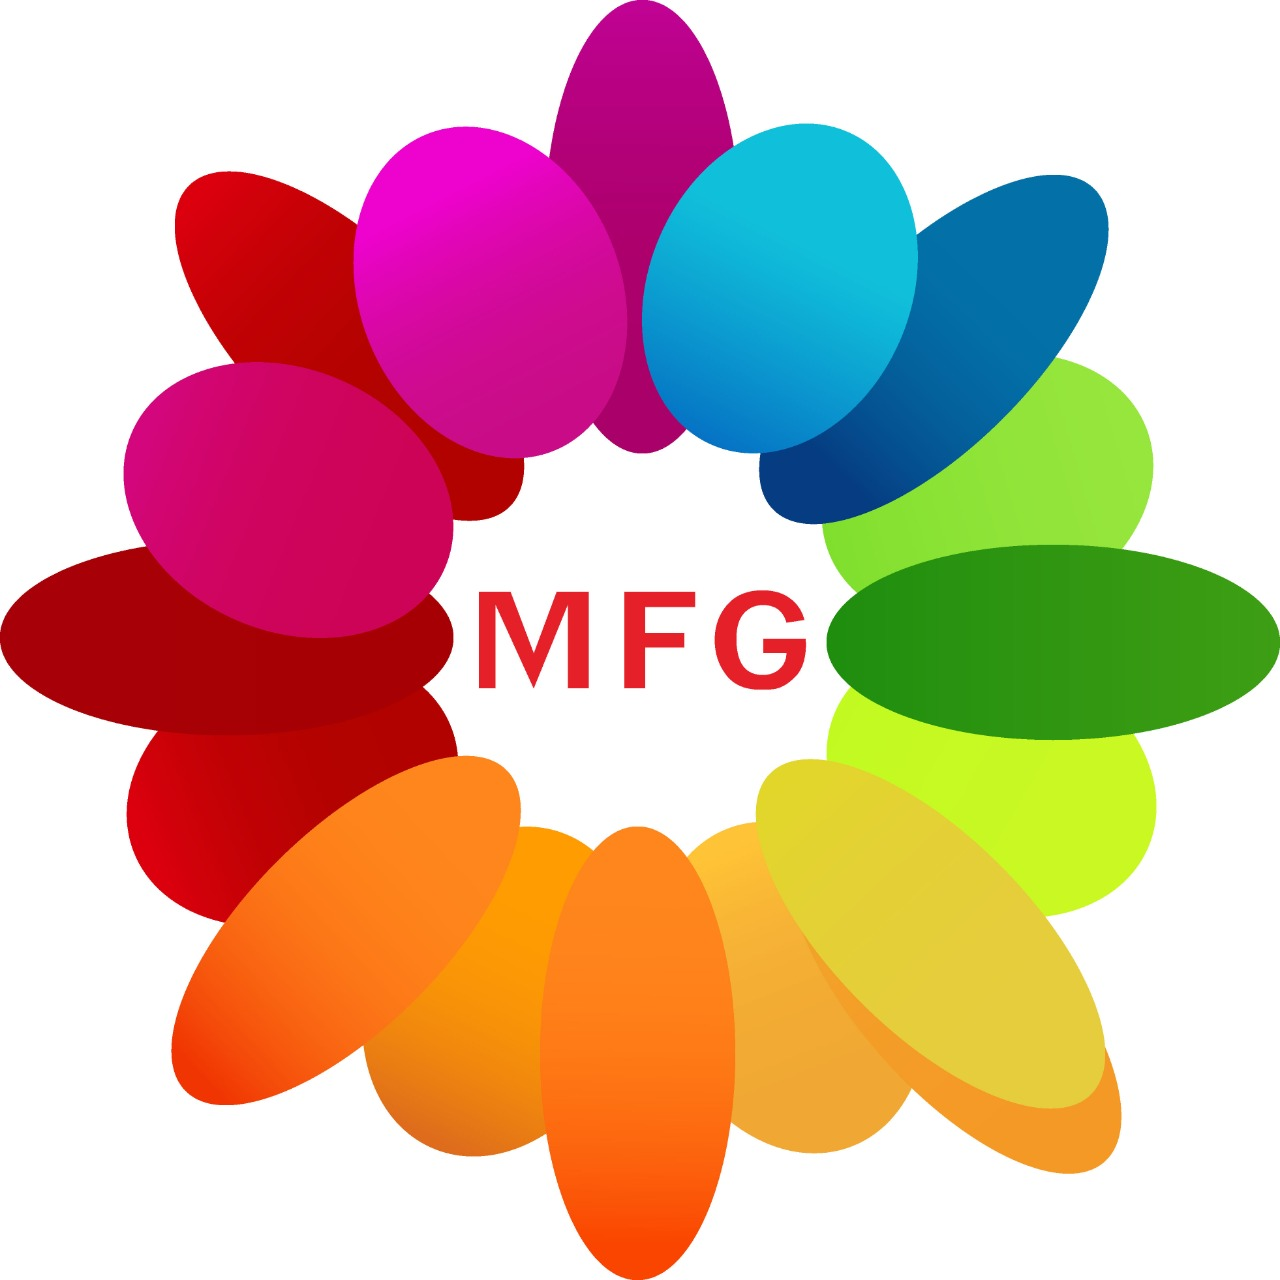 A grand Bunch of 1000 red roses of dutch qualtity .. can be the jumbo gift this valentine to express your deep love